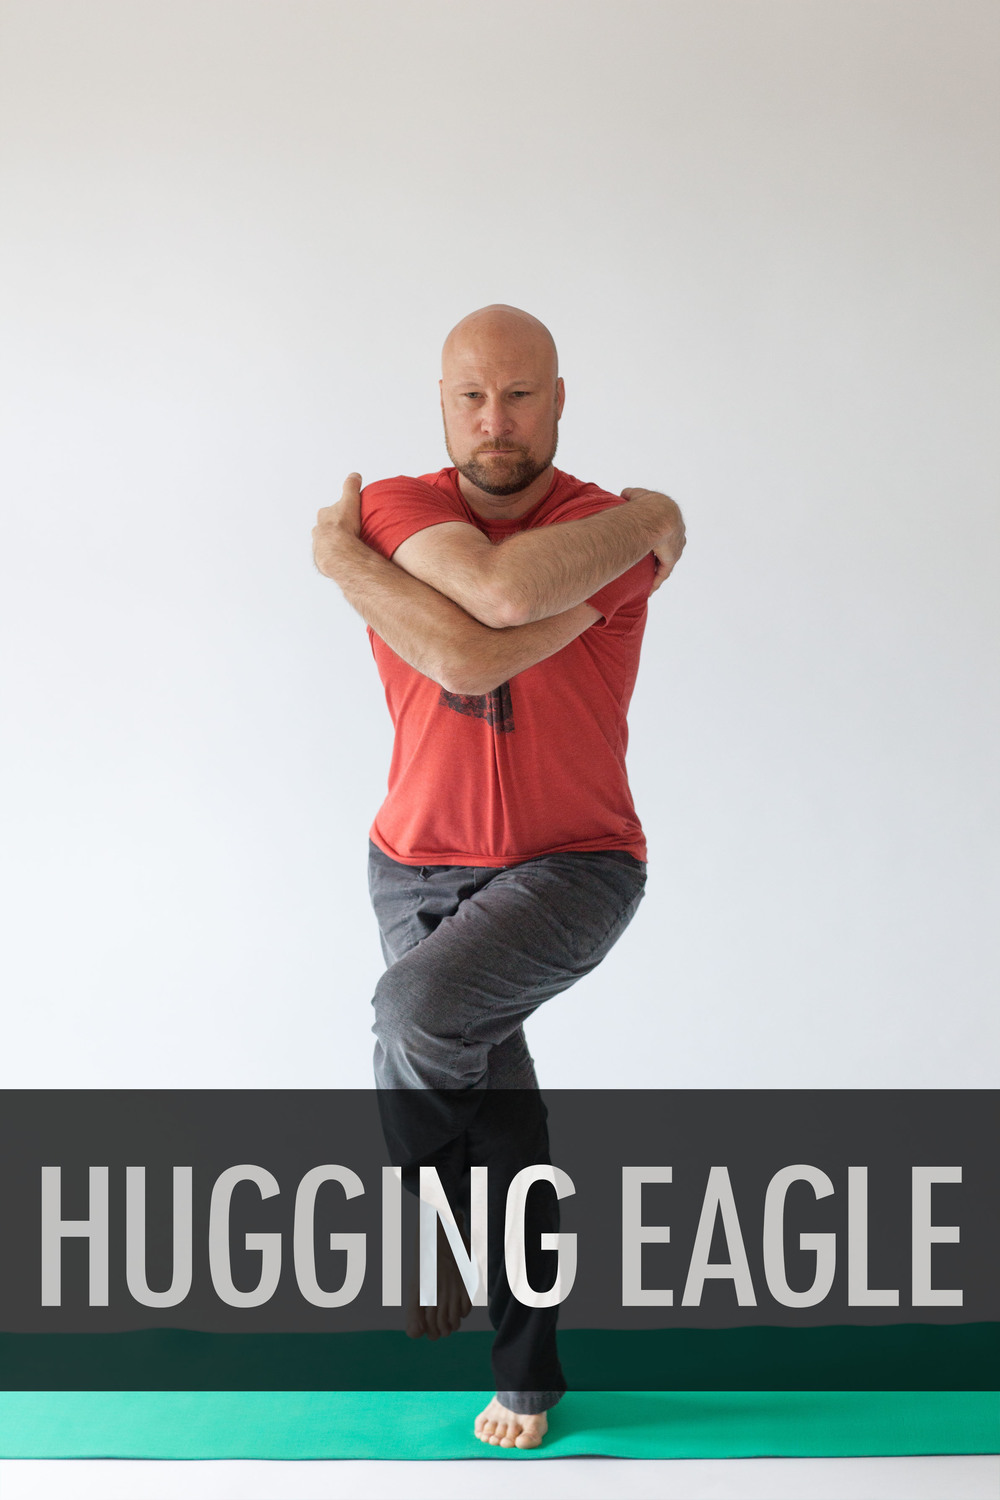 Hugging Eagle.jpg